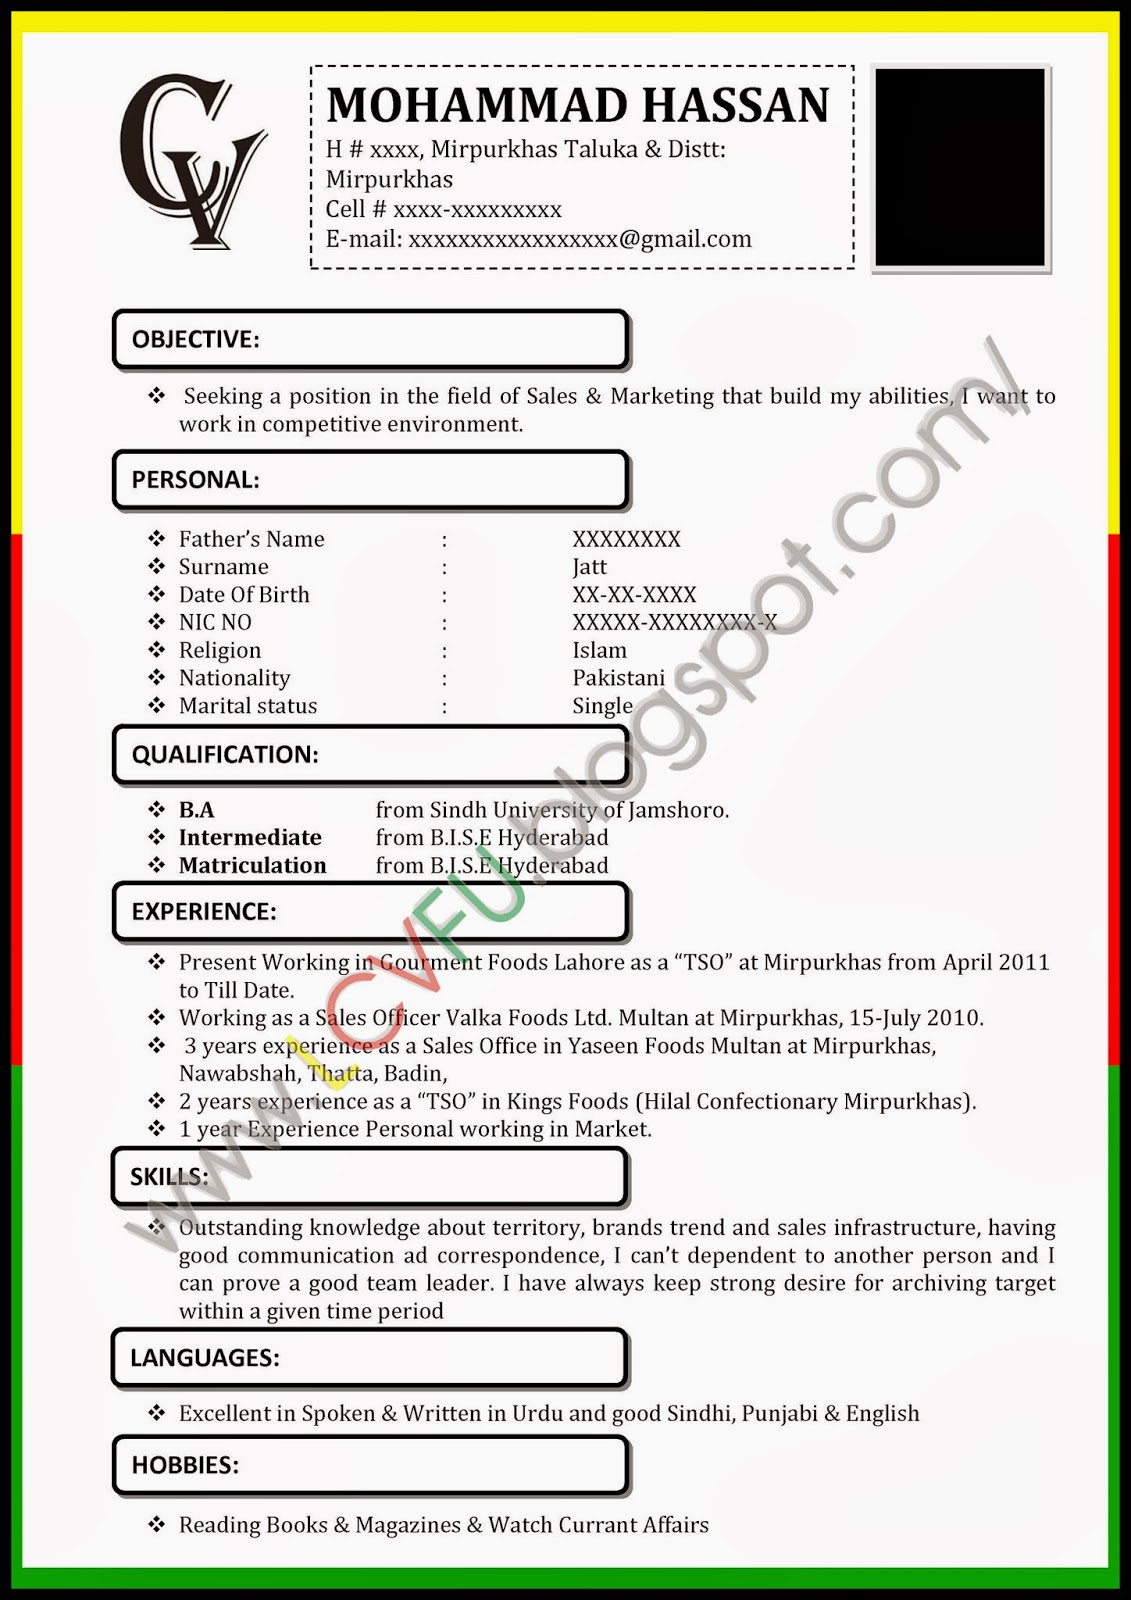 cv format word for engineers sample war cv format word for engineers sample cv for engineers engineers cv formats templates resume format fresher